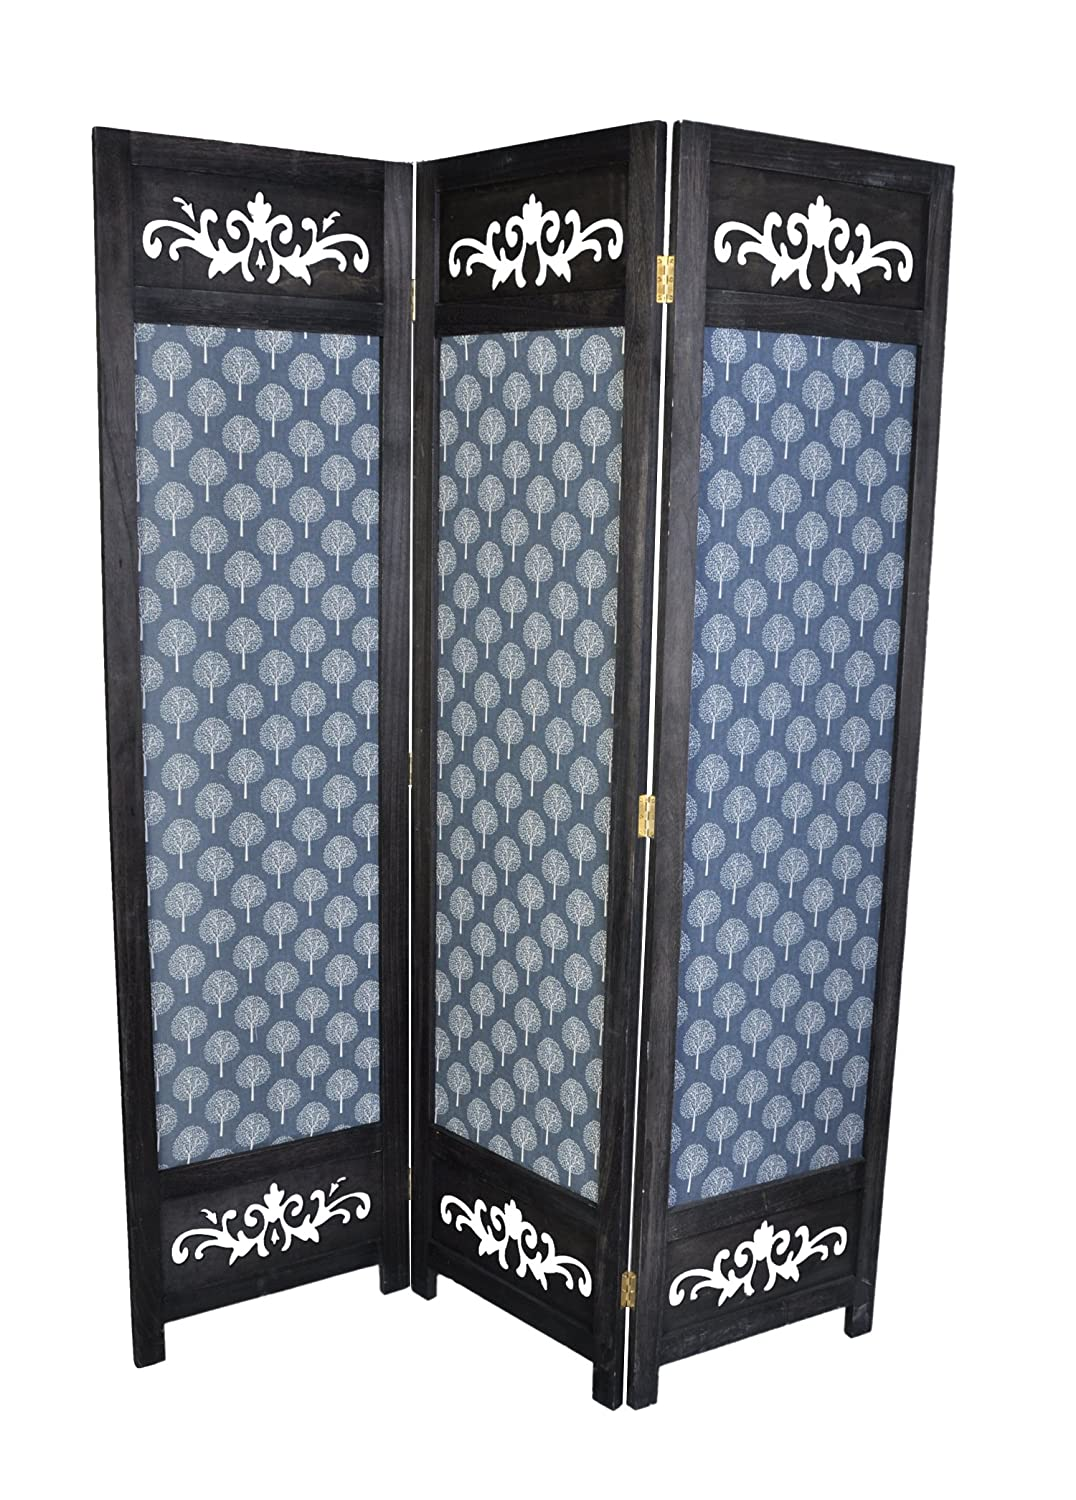 3 Panel Solid Wood And Canvas Screen Room Divider, Black Color With Decorative Cutouts And Tree Designs, By Legacy Decor by Legacy Decor